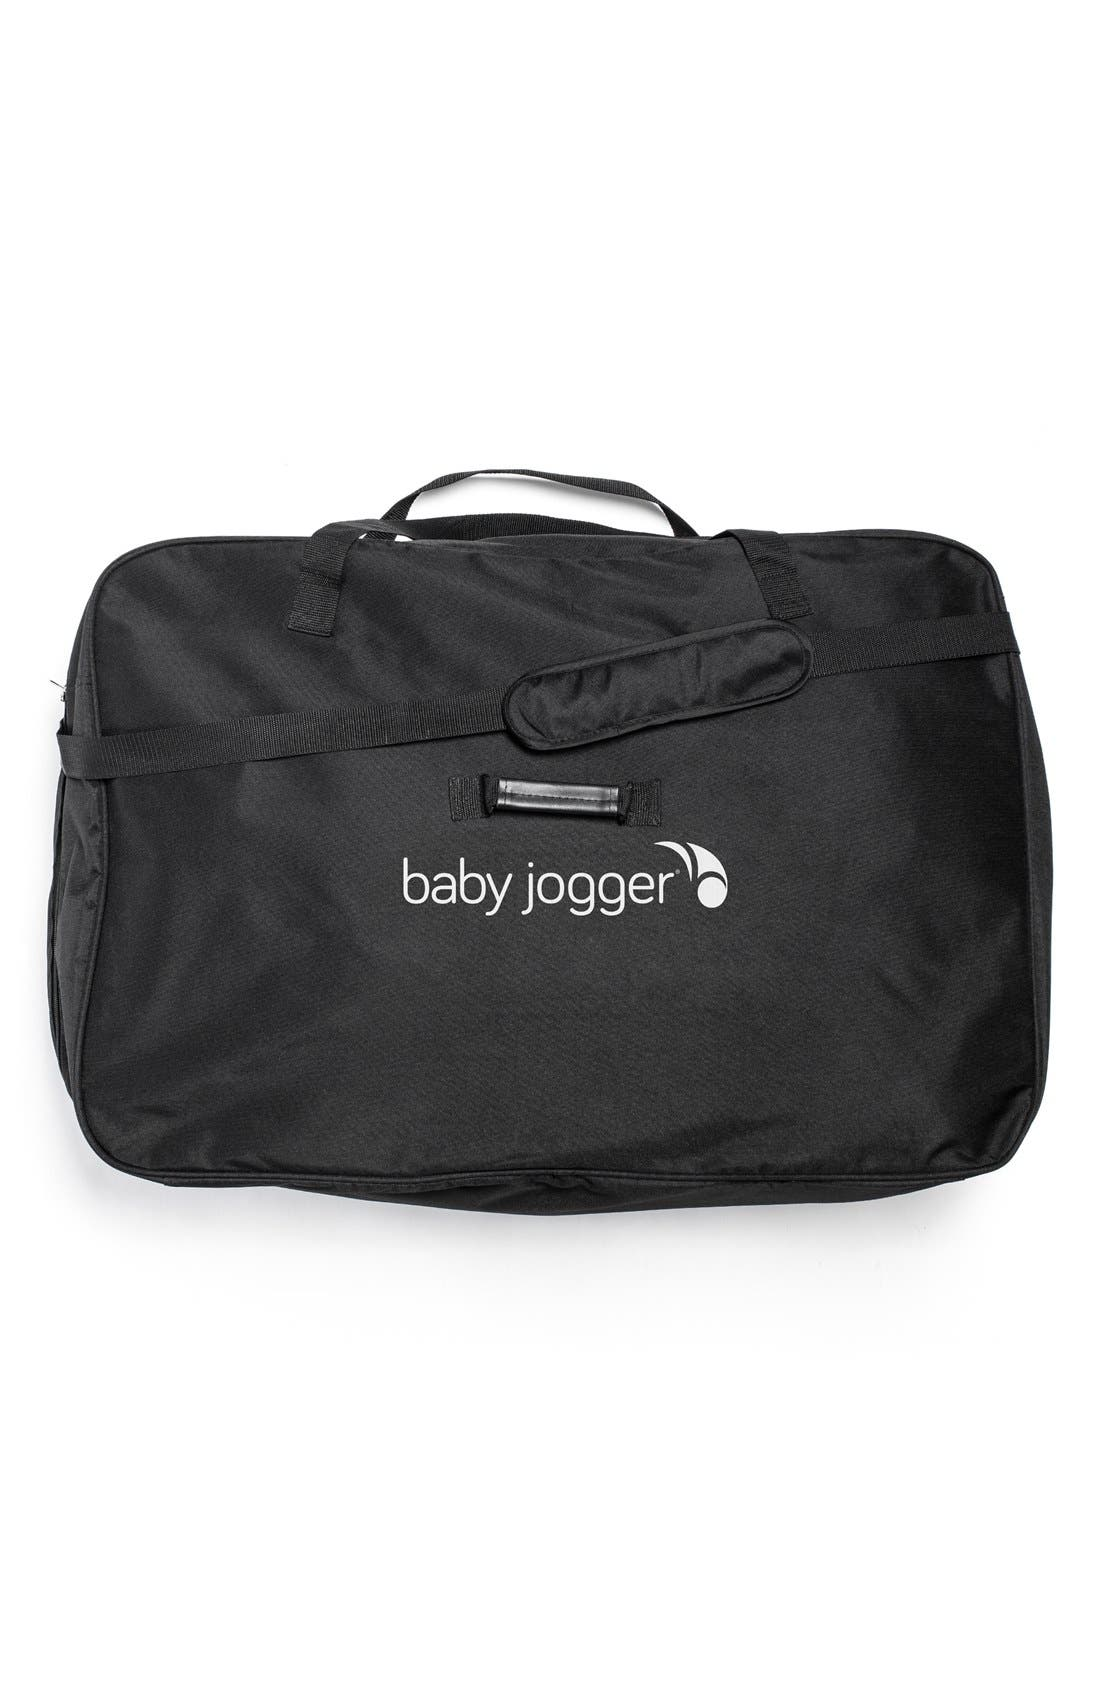 Main Image - Baby Jogger 'City Select™' Stroller Carry Bag